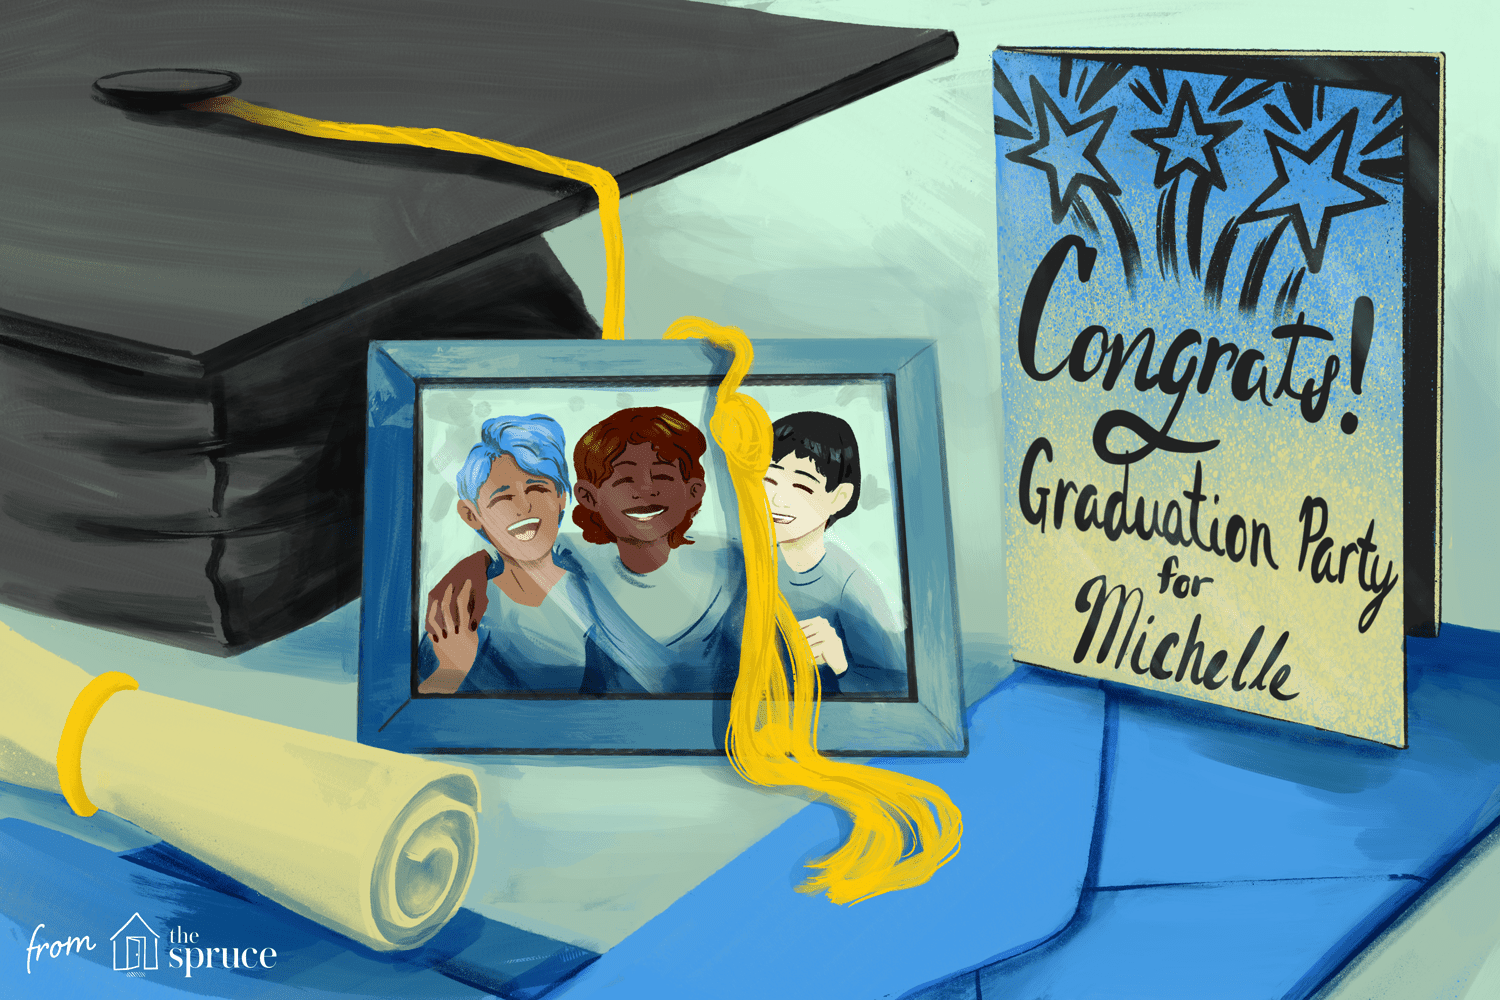 It's just an image of Légend Free Printable Graduation Invitations 2020